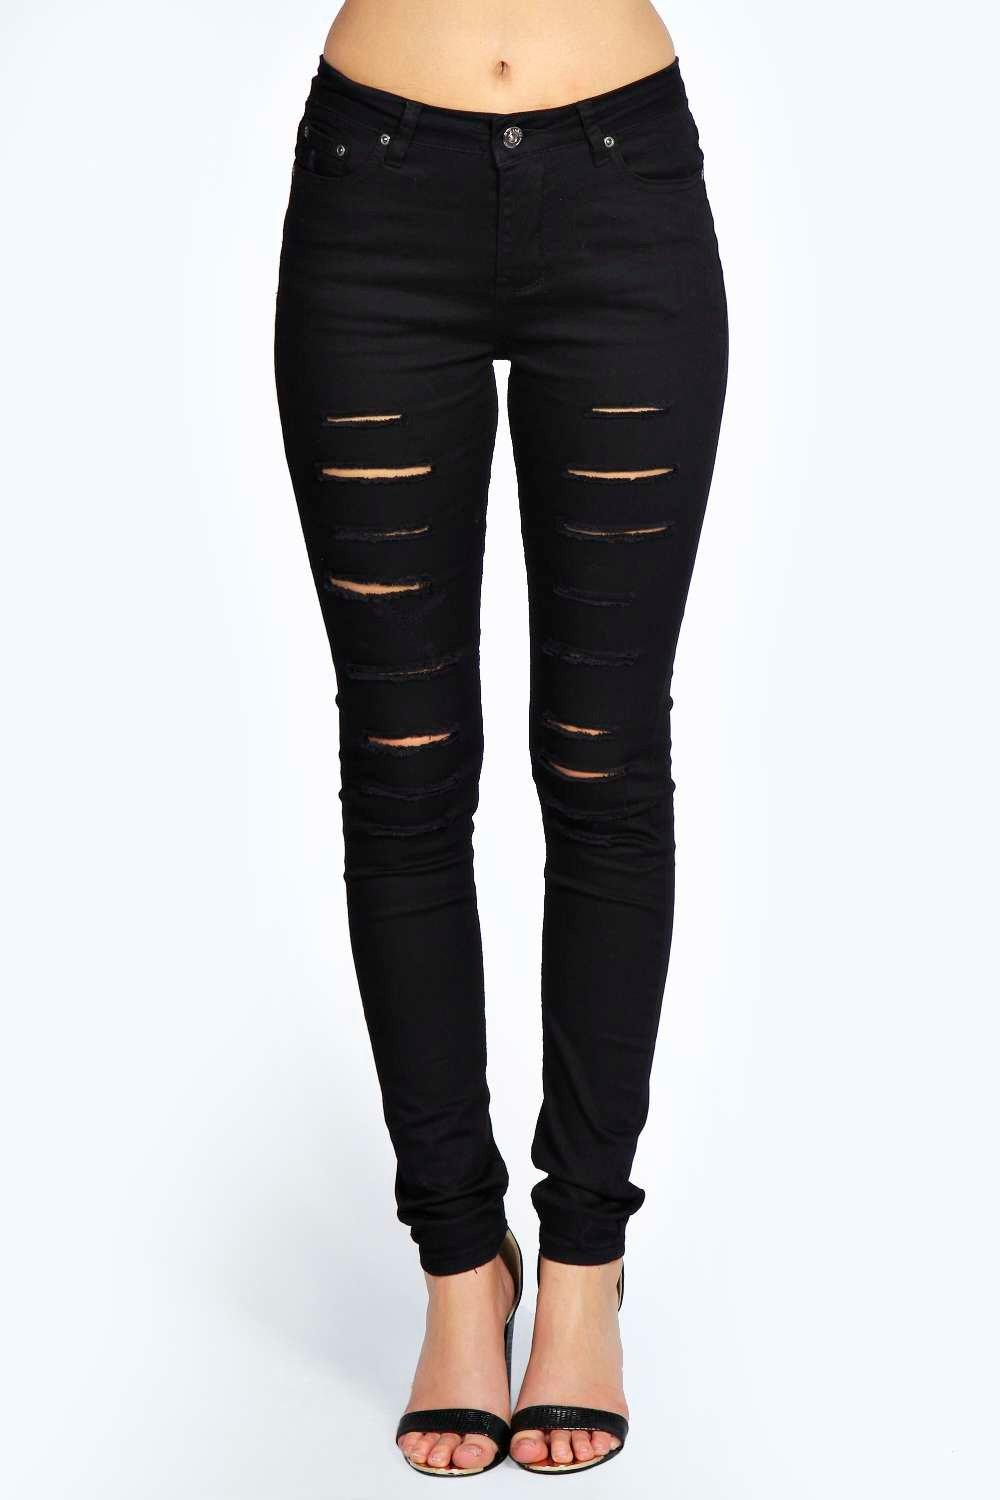 Black ripped Sid skinny jeans Black ripped Sid skinny jeans Was £ Now £ Product no: Big & Tall black ripped skinny jeans. Quick view. Add to wishlist. £ Big and Tall mid blue Eddy faded skinny jeans. Quick view. Add to wishlist. £